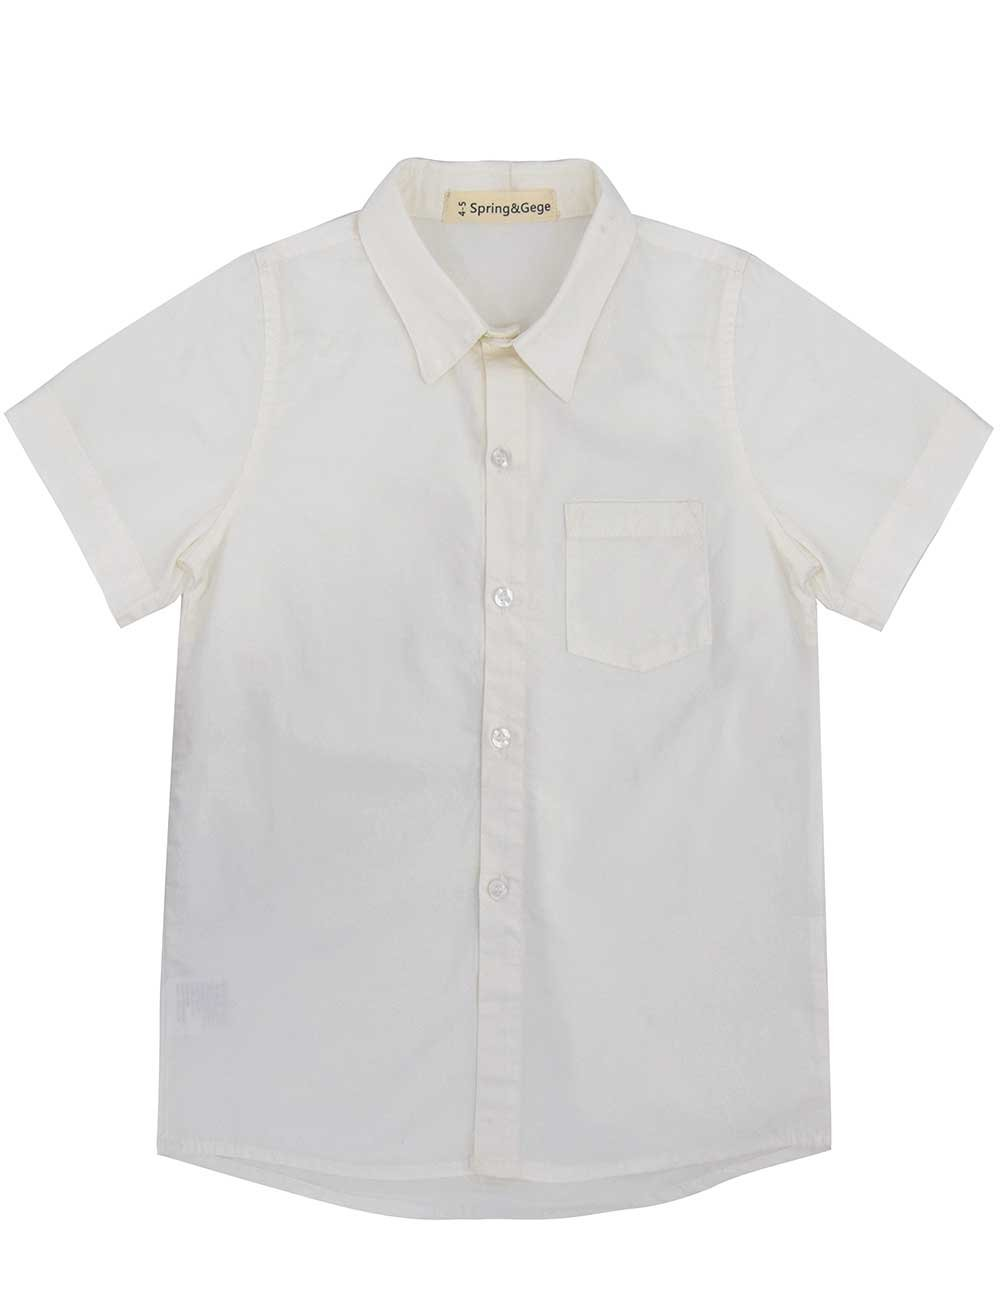 Spring&Gege Boys' Short Sleeve Solid Formal Cotton Twill Dress Shirts Milky White 9-10 Years